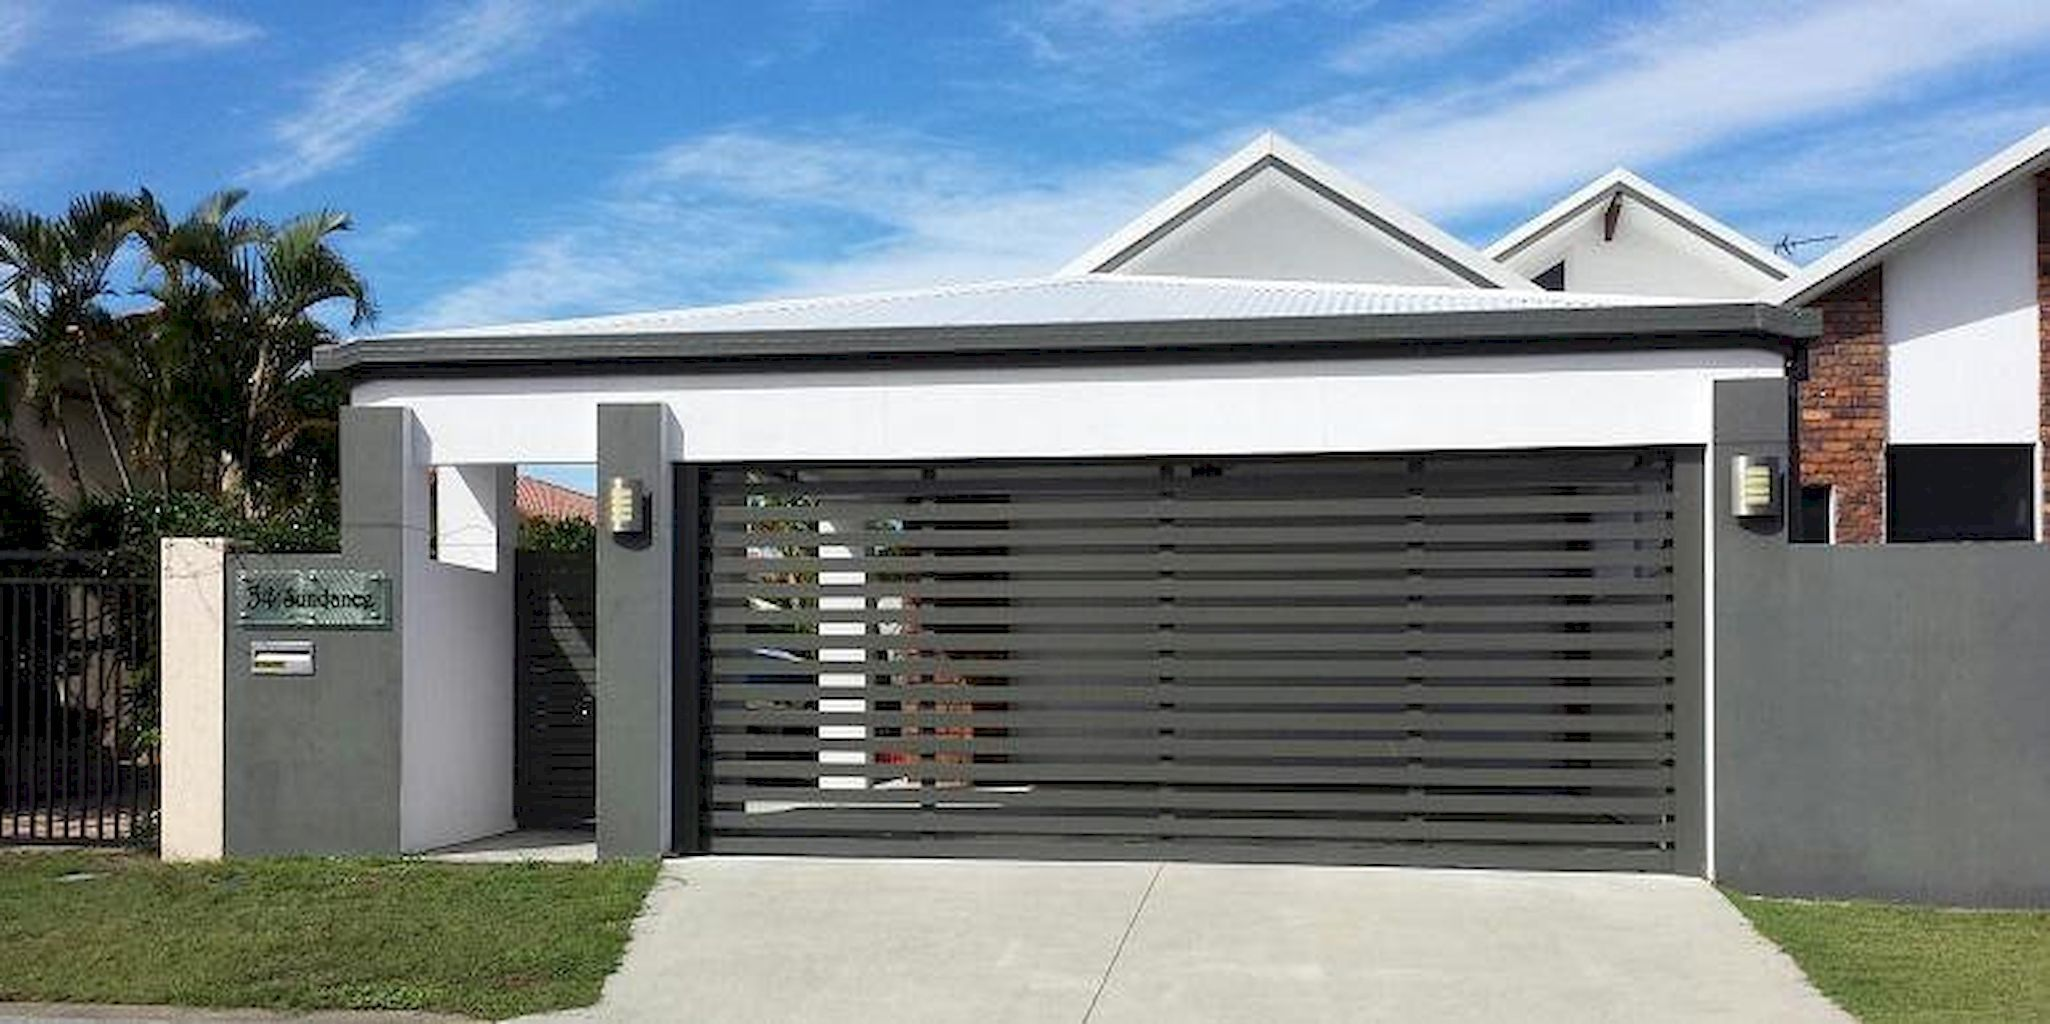 55 adorable modern carports garage designs ideas modern for Garage plans with carport